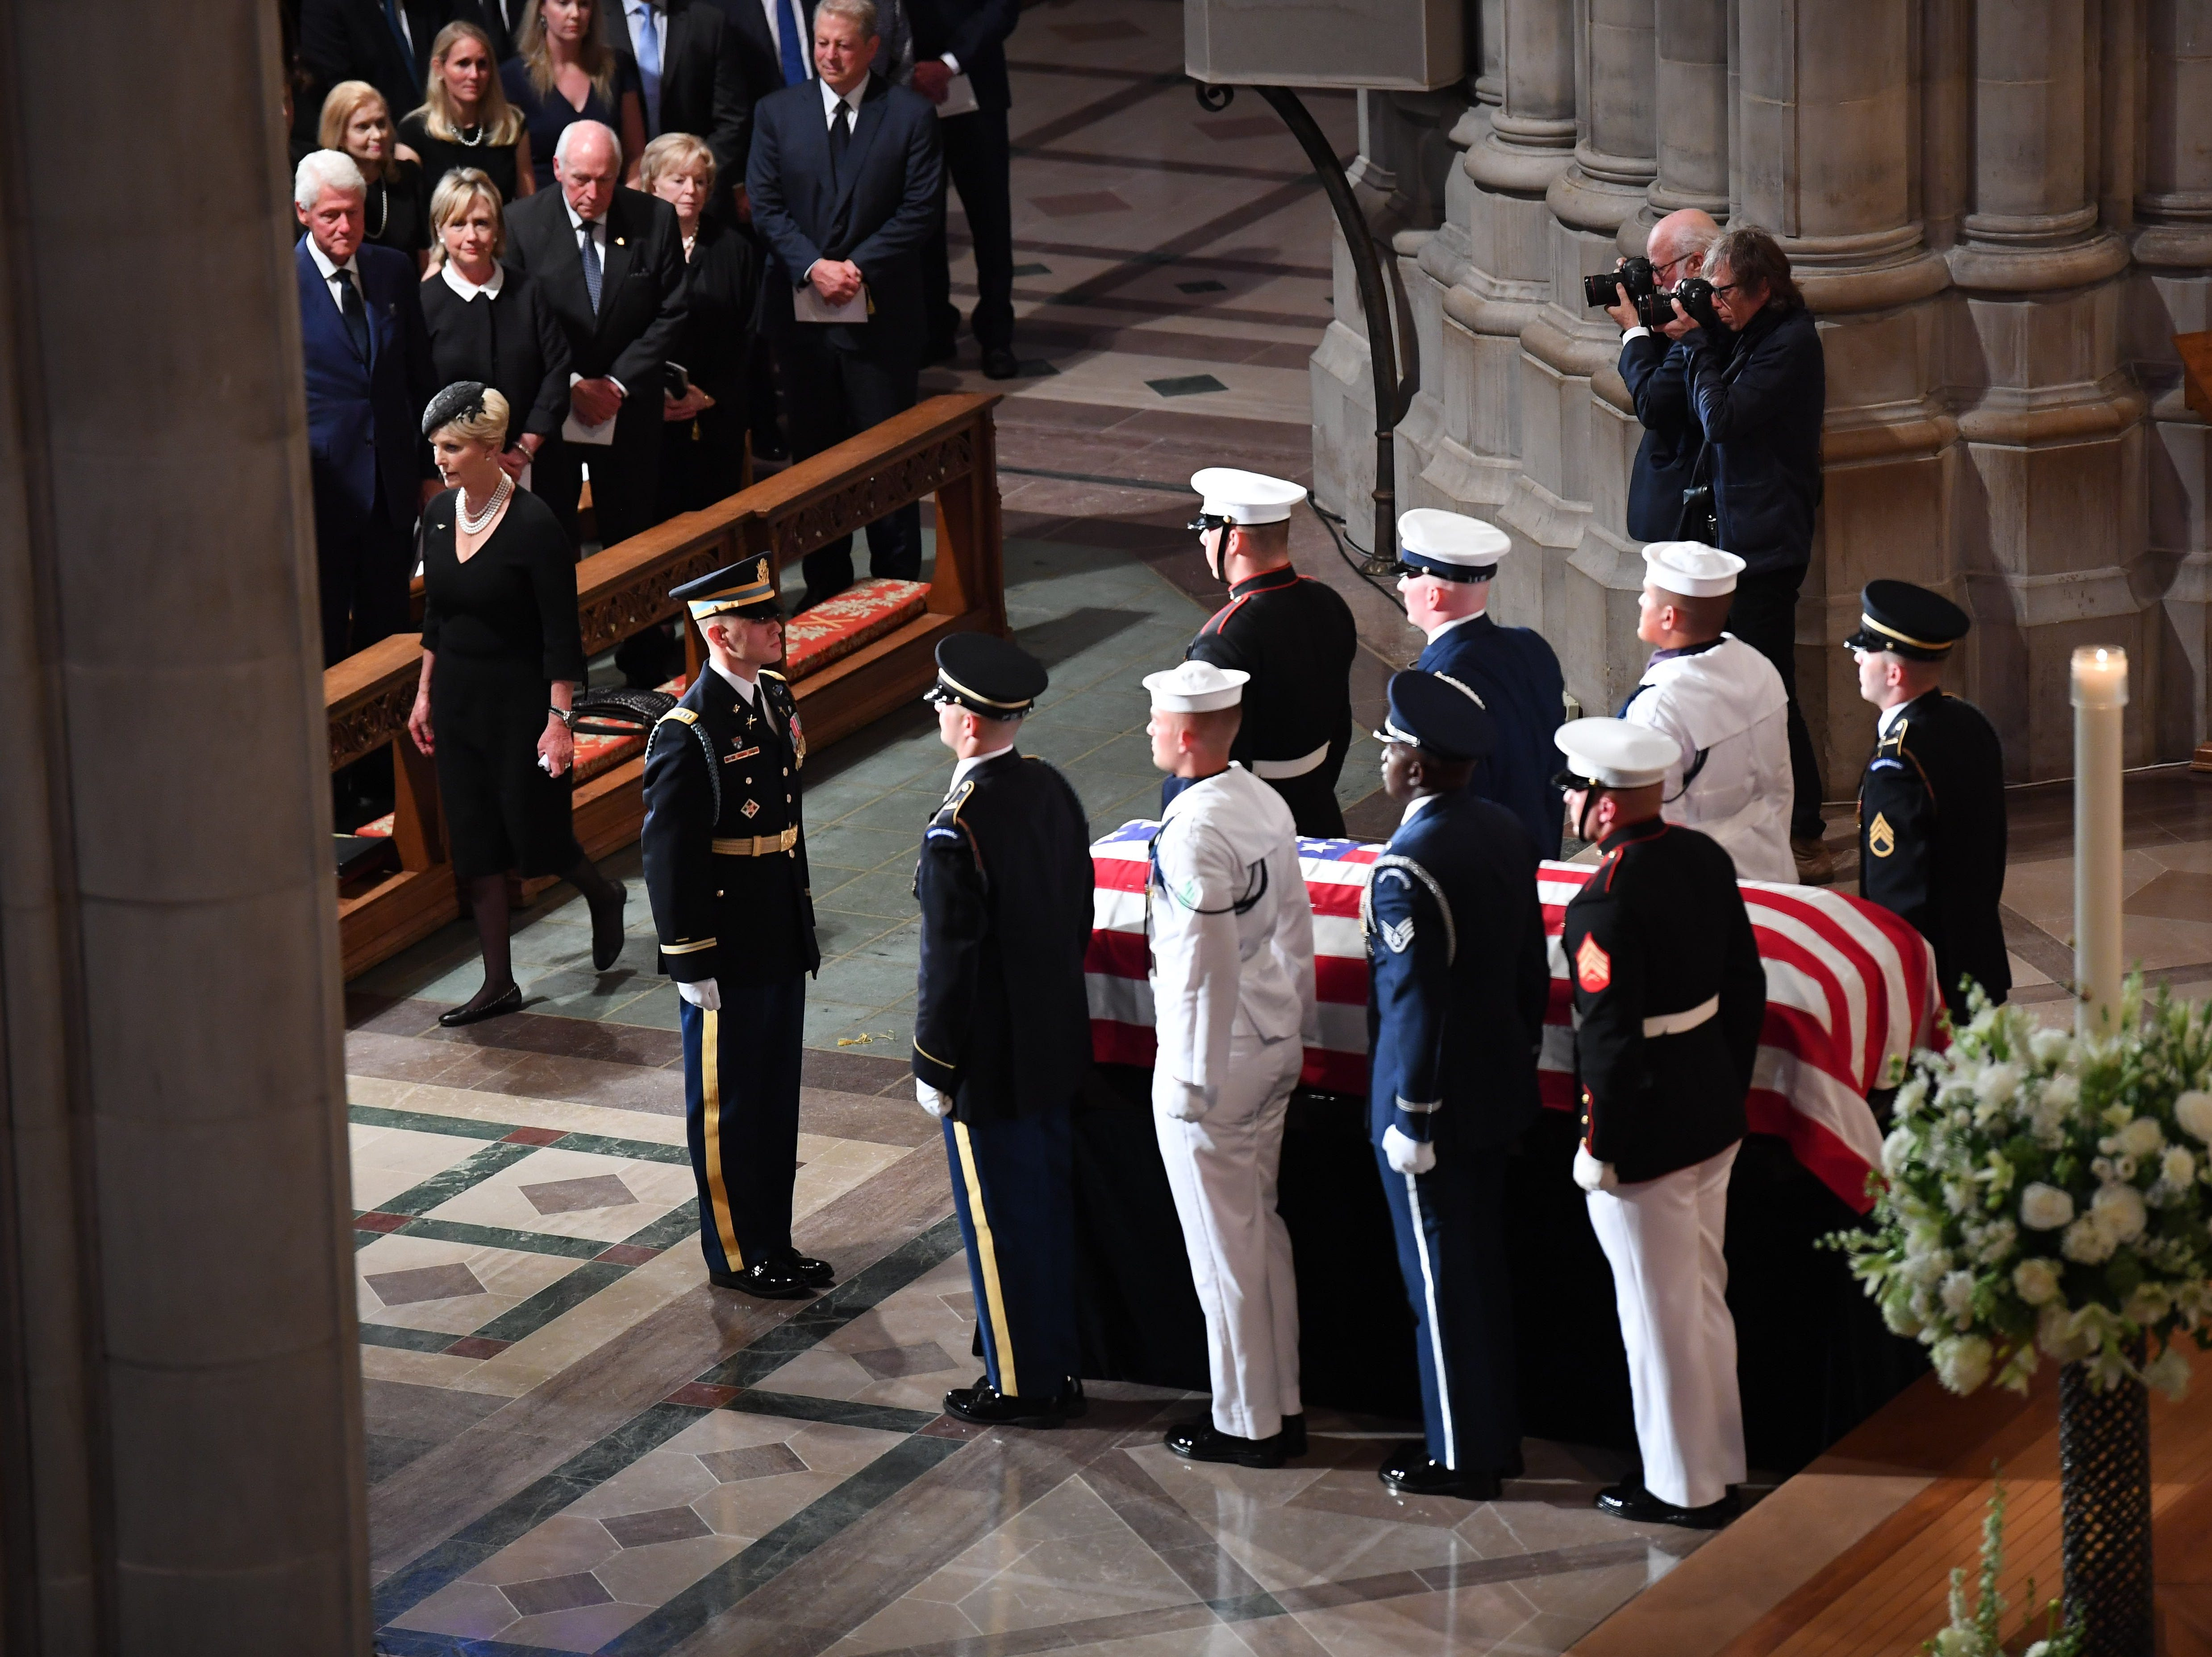 Cindy McCain arrives with with the casket of her husband, Saturday, during the at the National Cathedral in Washington, DC.